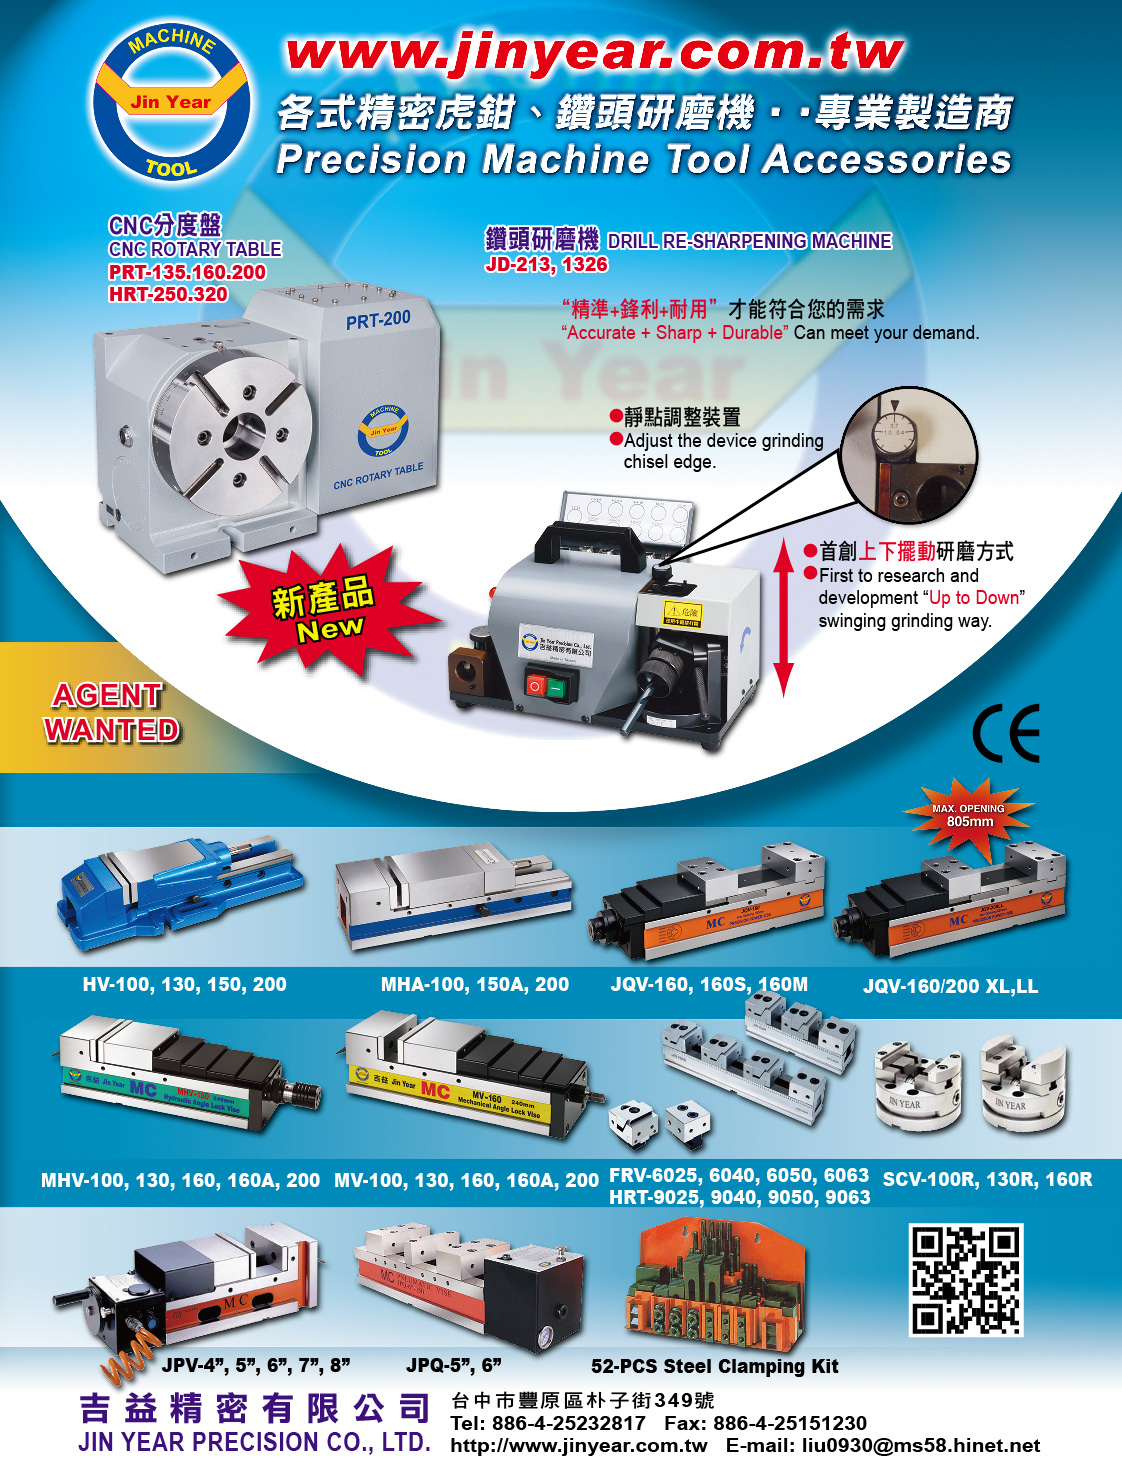 JIN YEAR PRECISION CO., LTD.